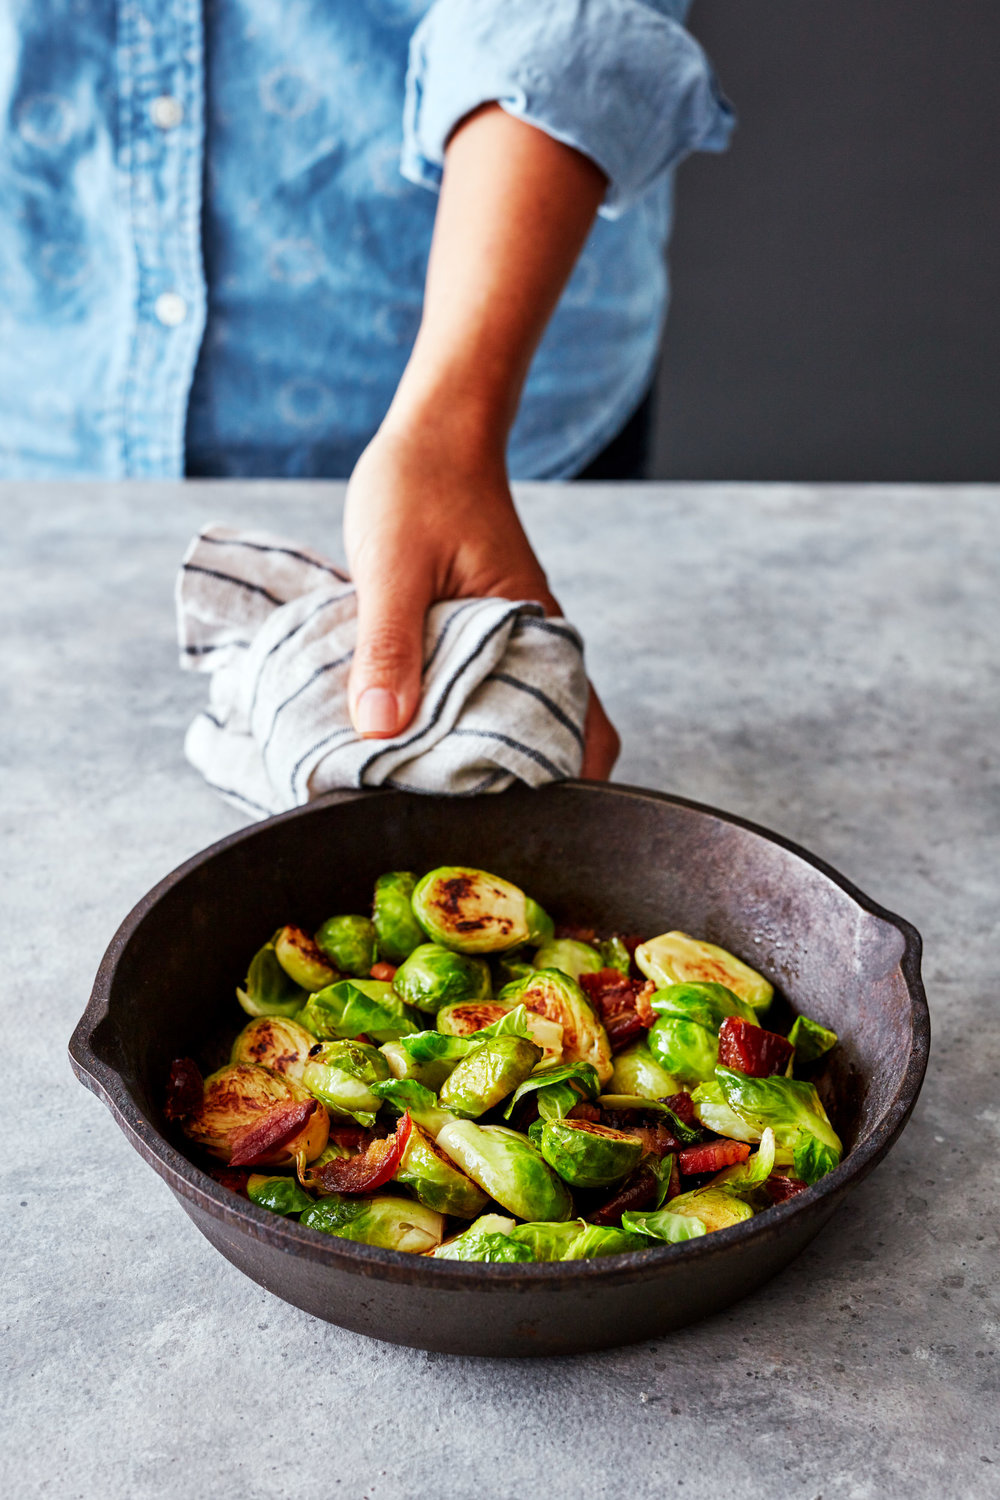 food-brussels-sprouts-lesliegrow.jpg